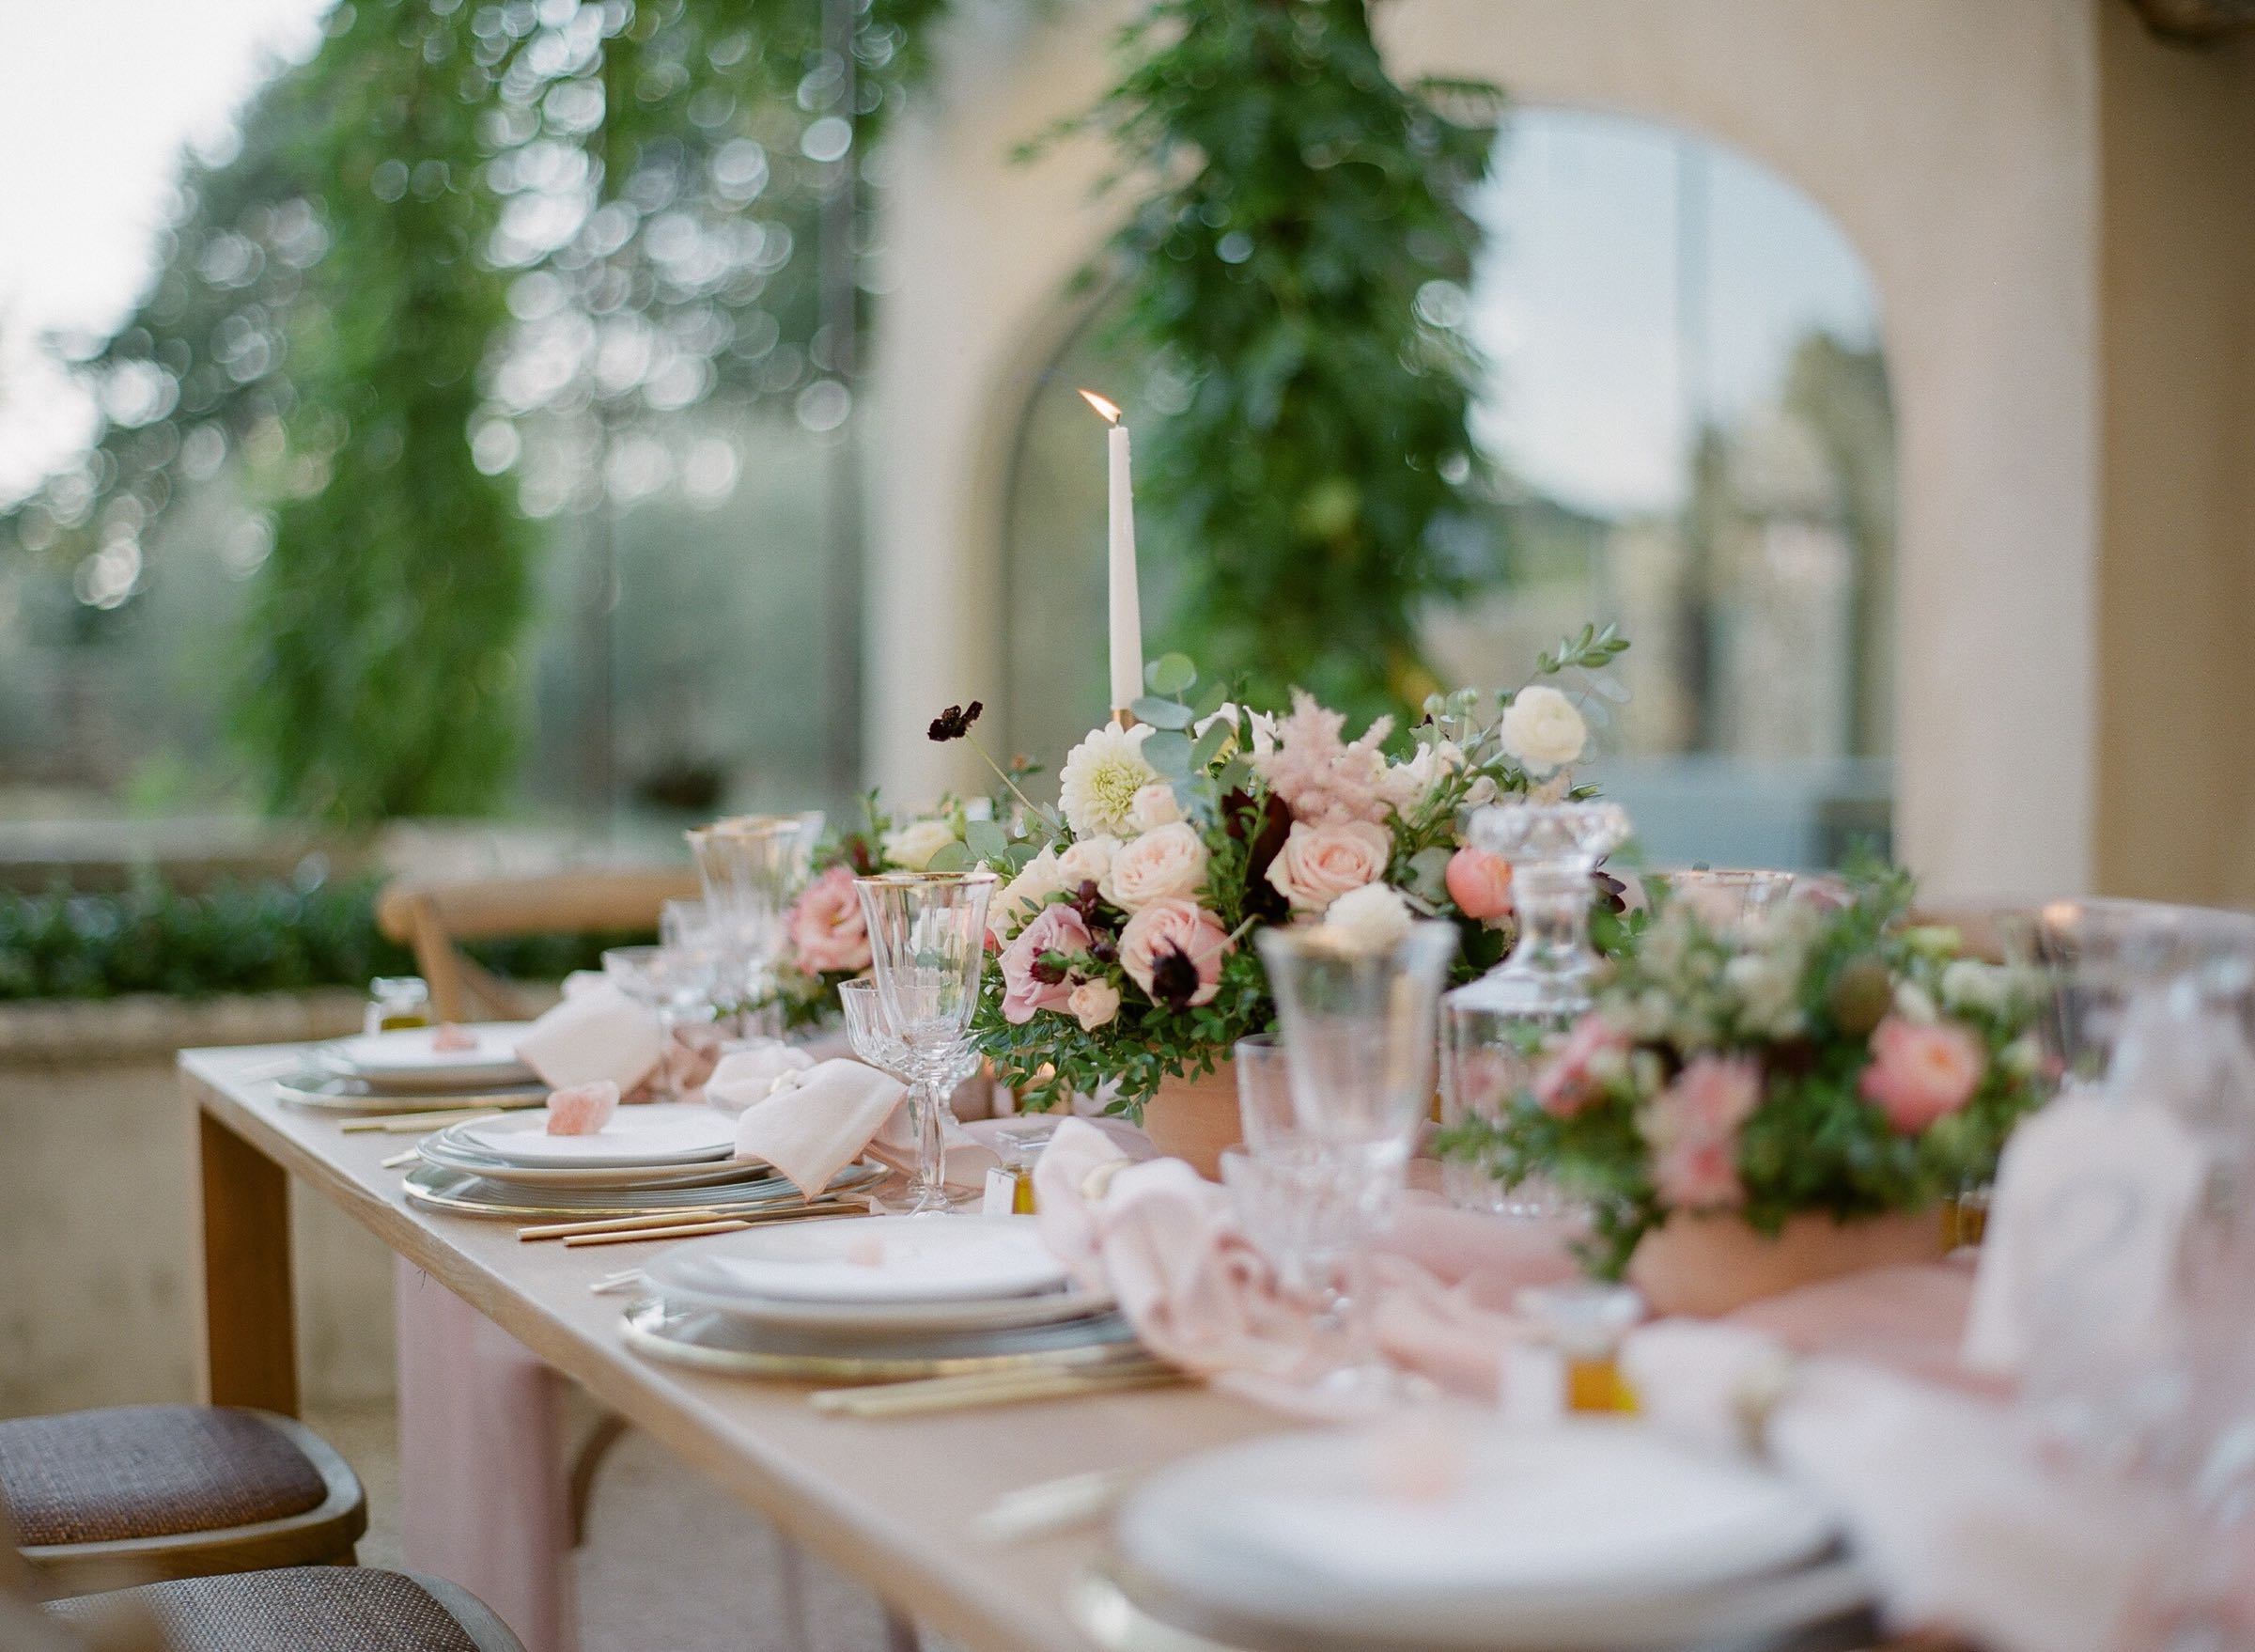 Wedding reception table decor with blush and gold accents